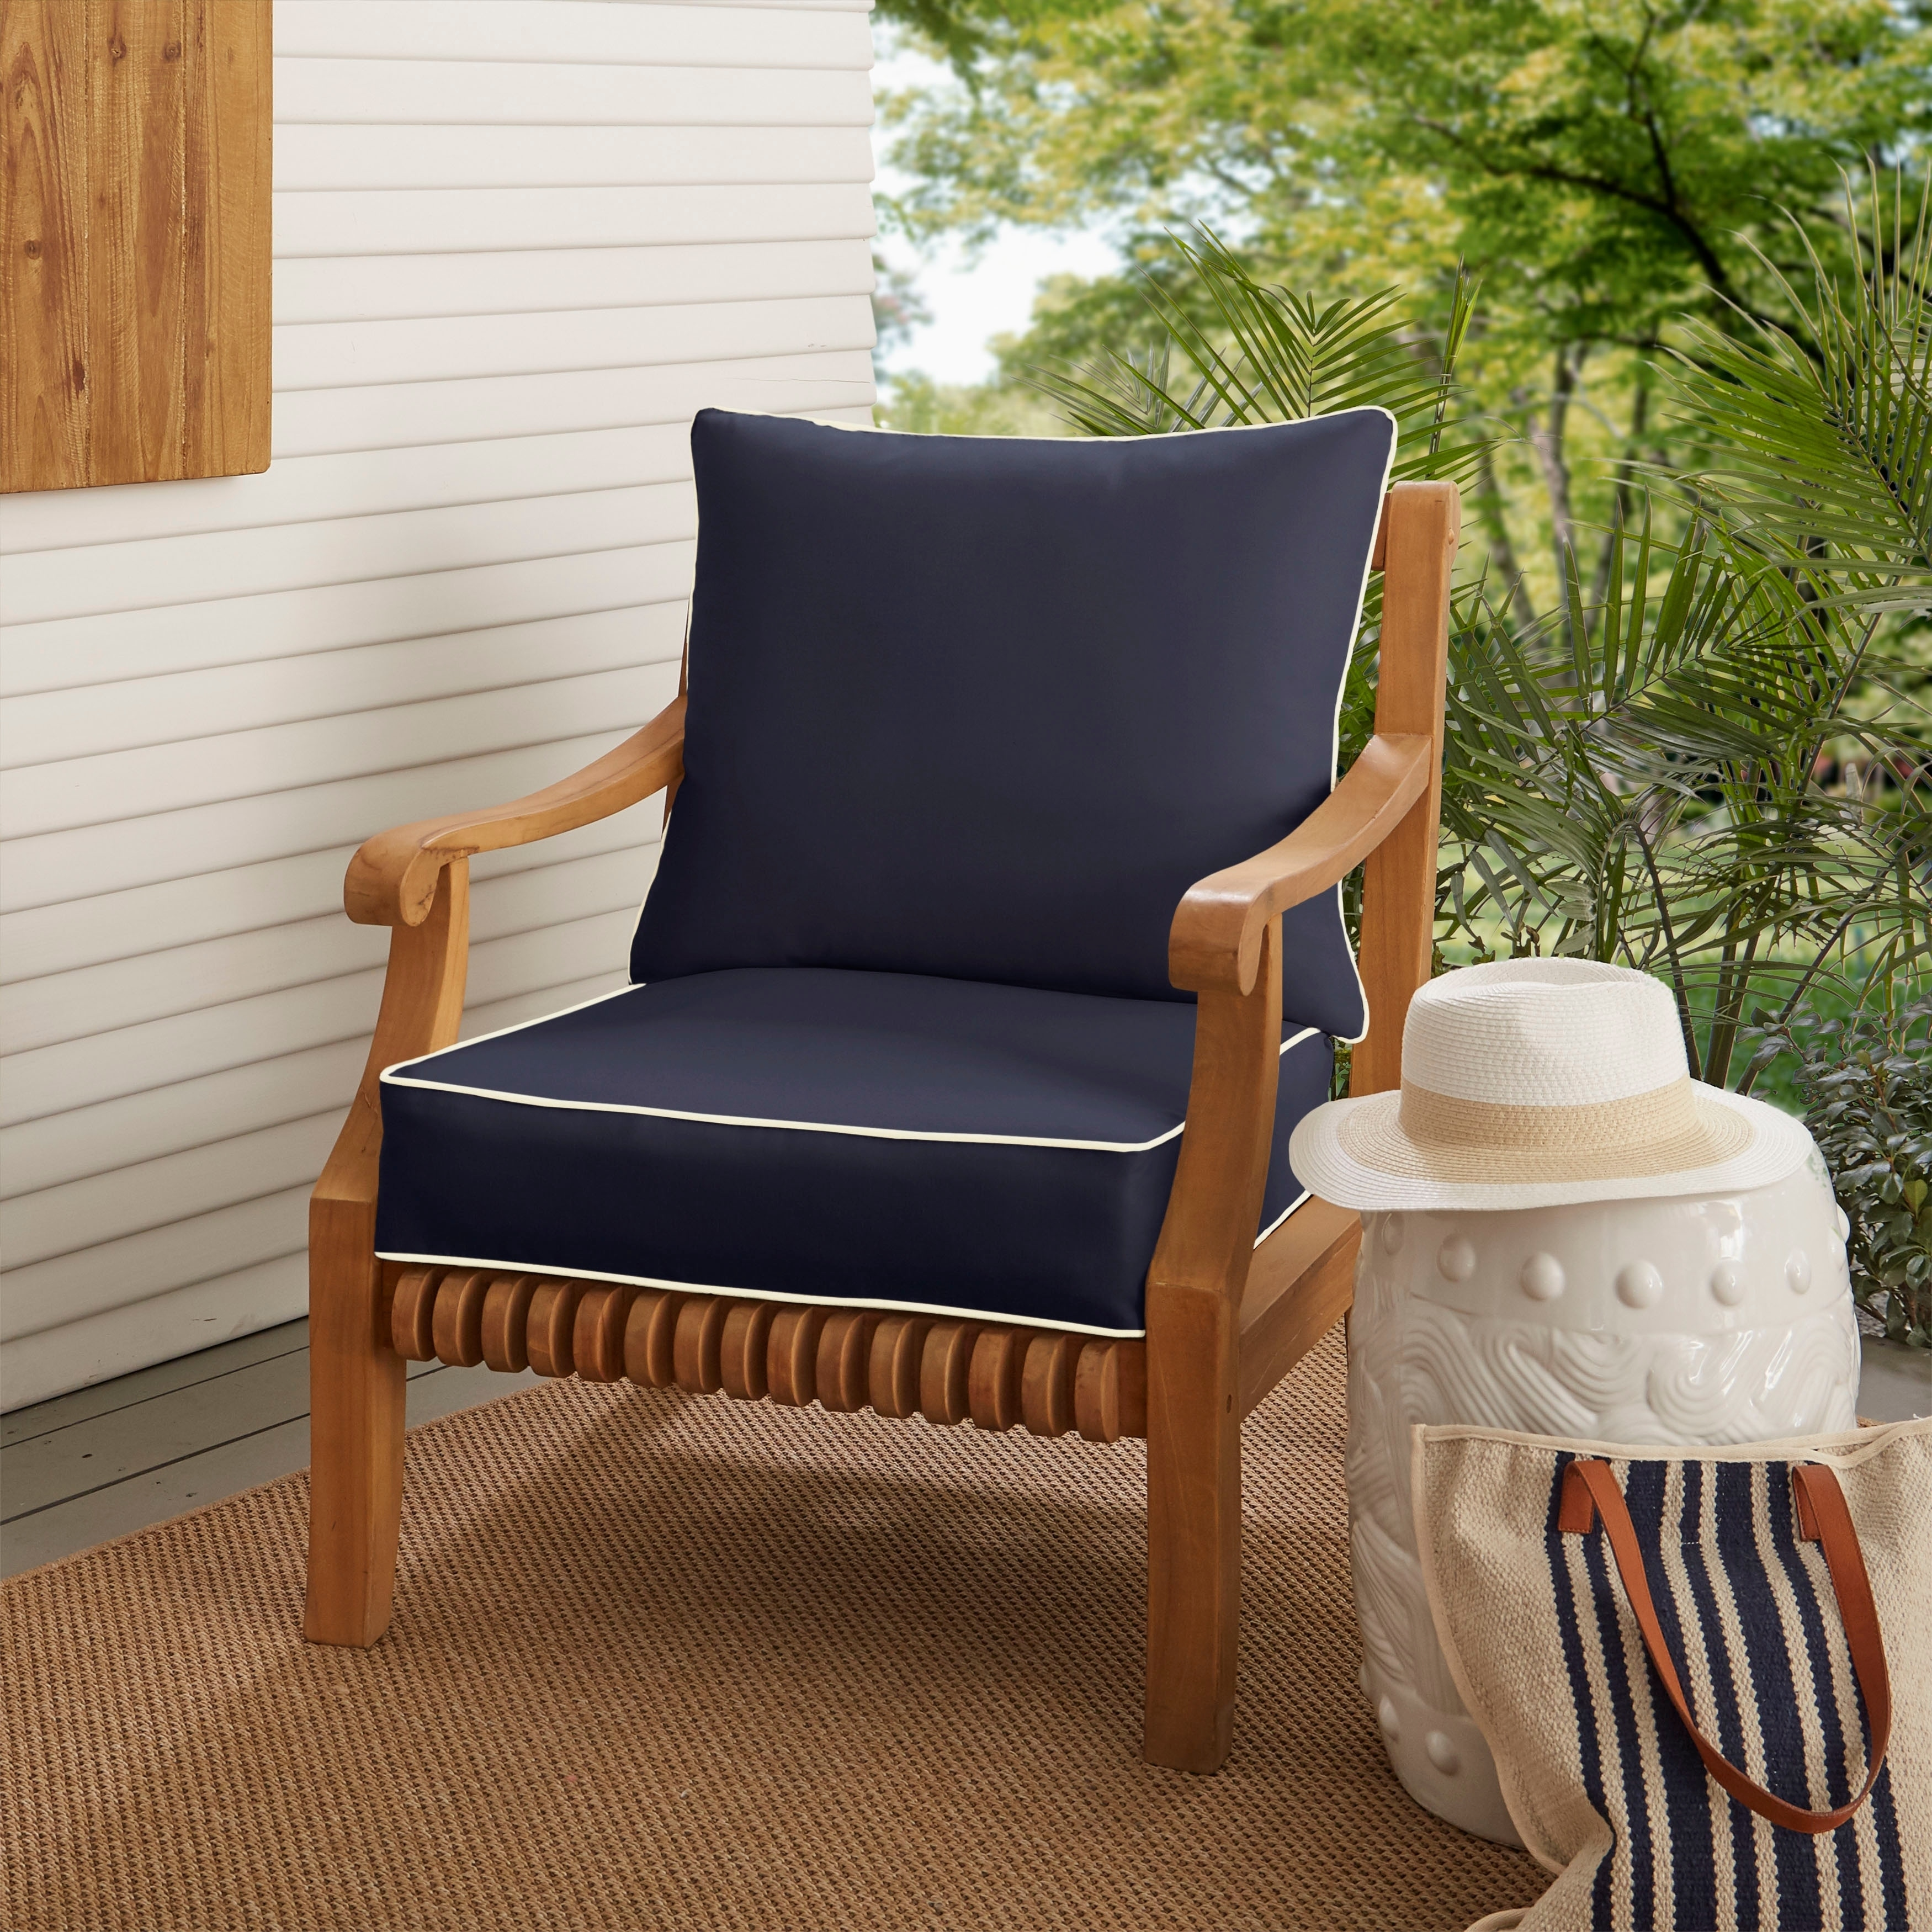 Outdoor Chair Cushion And